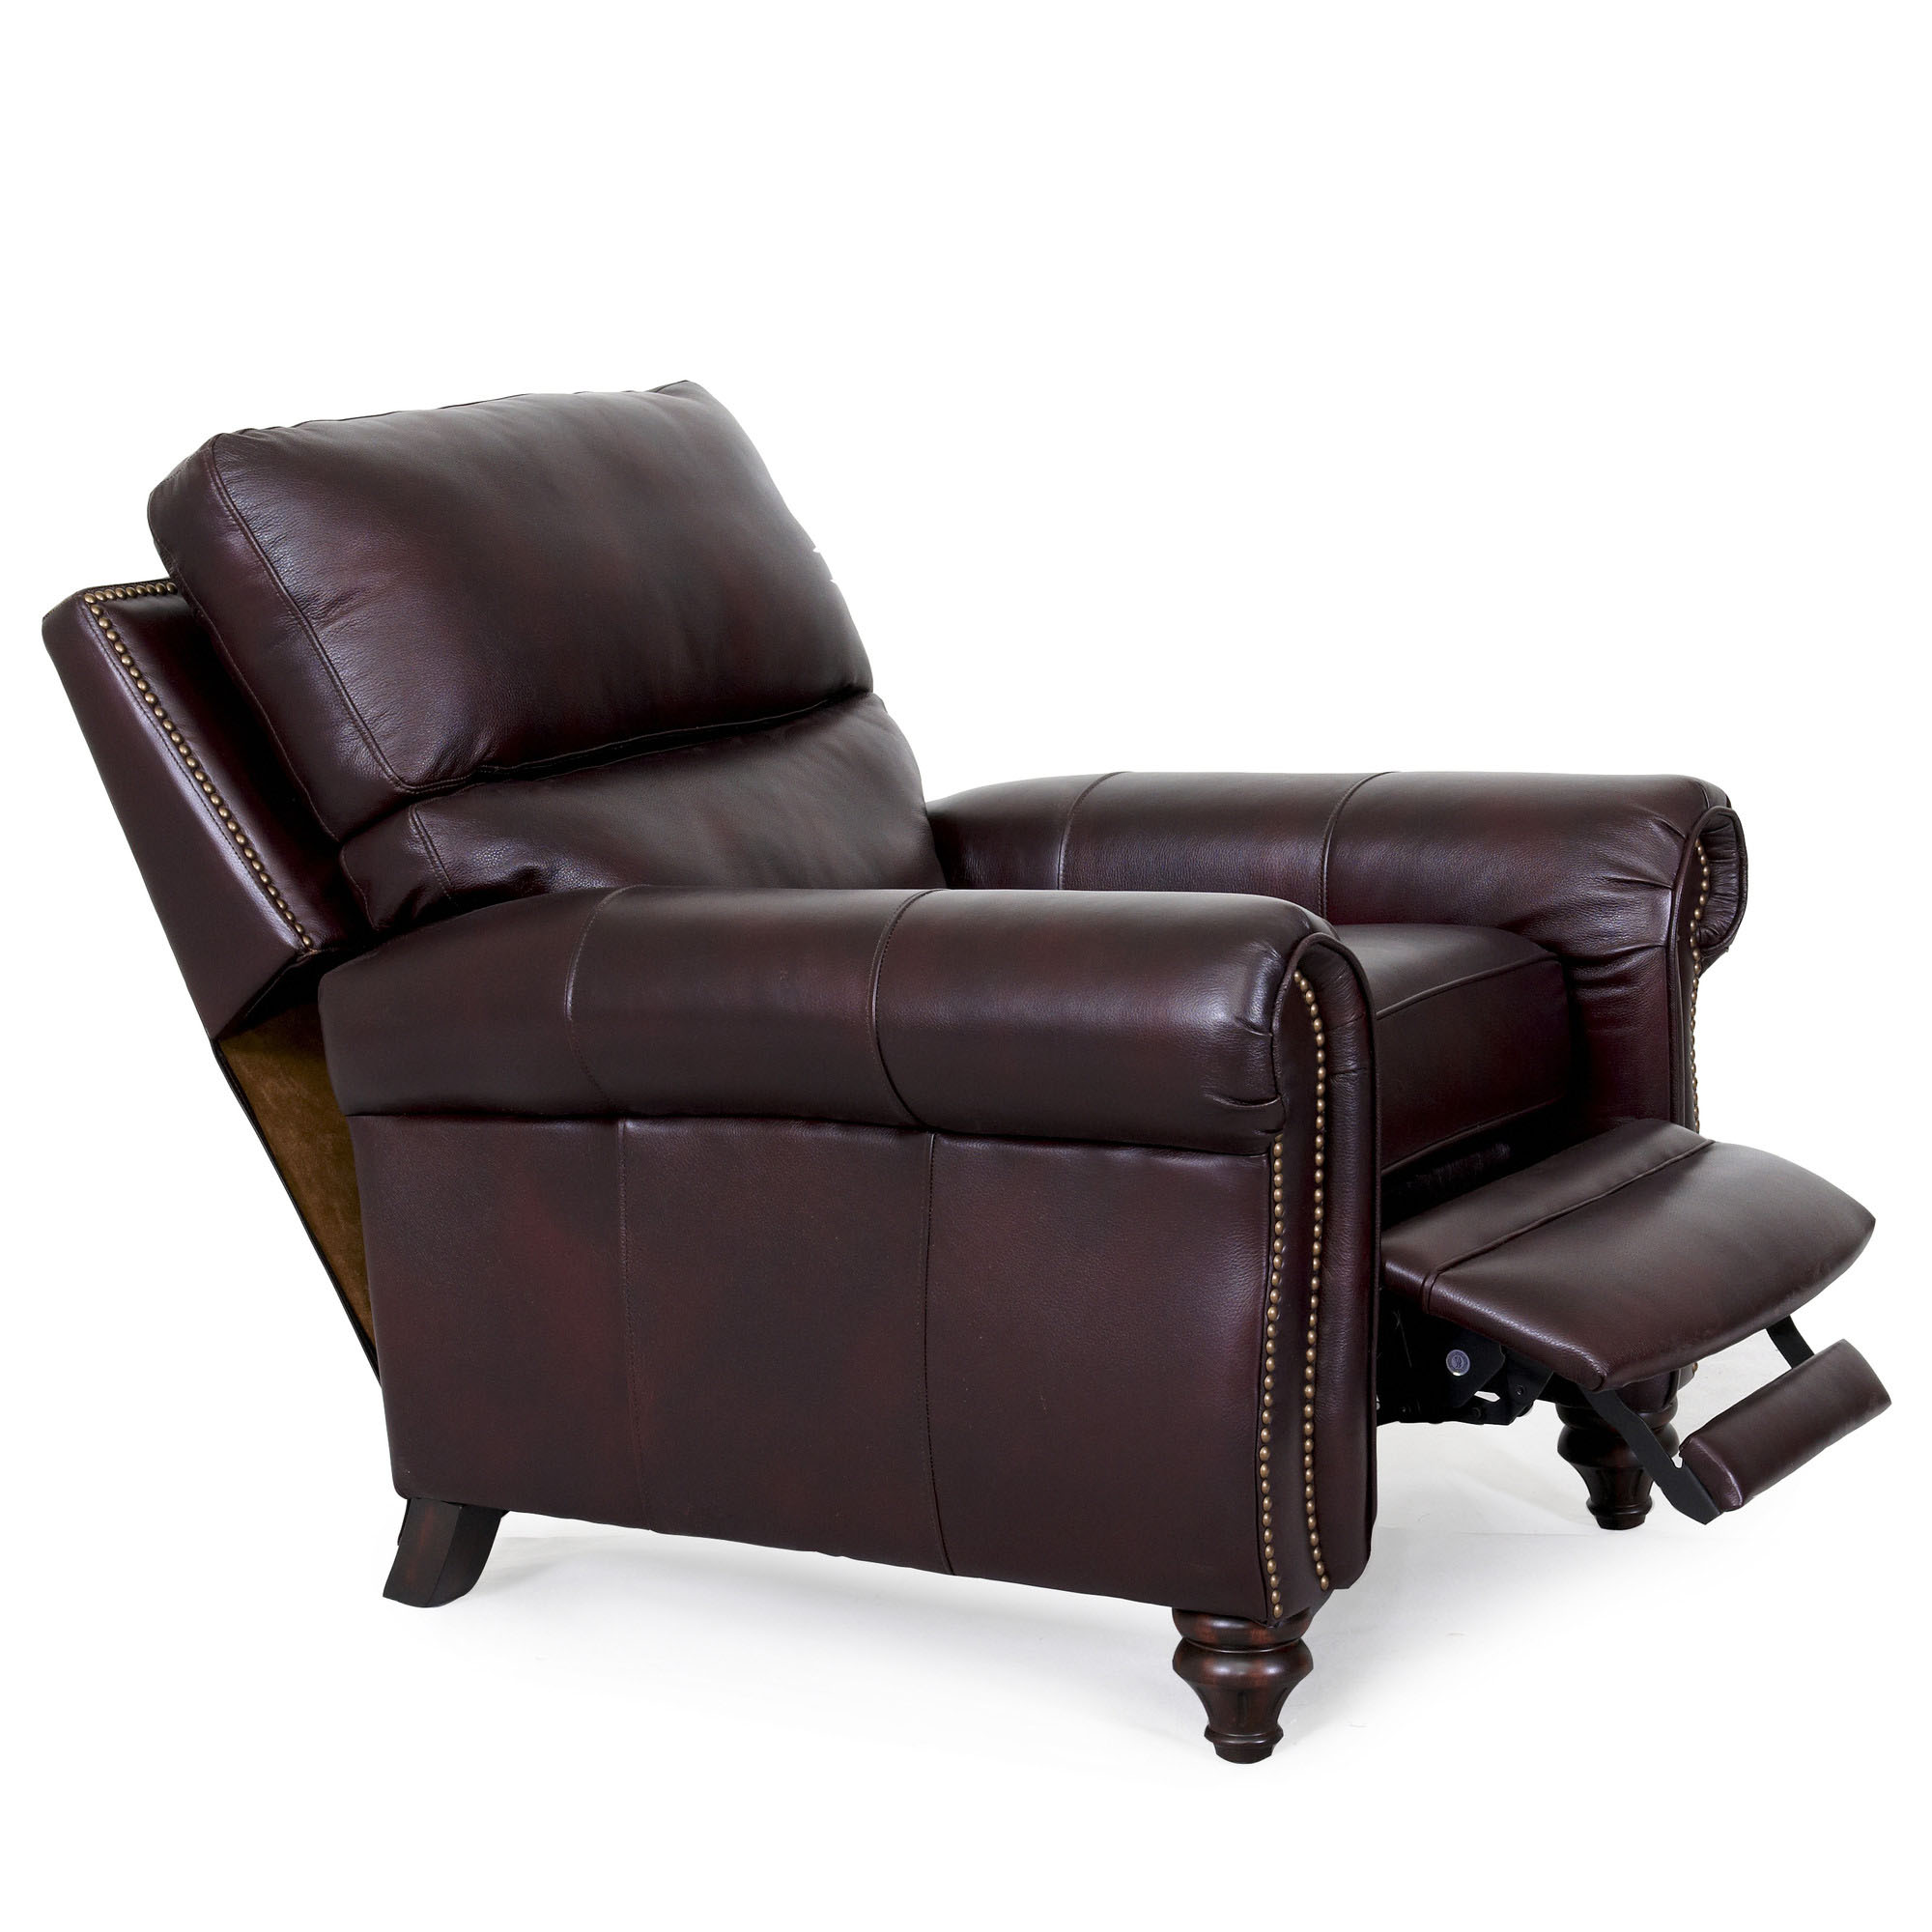 Barcalounger Dalton II Recliner Chair Leather Recliner Chair